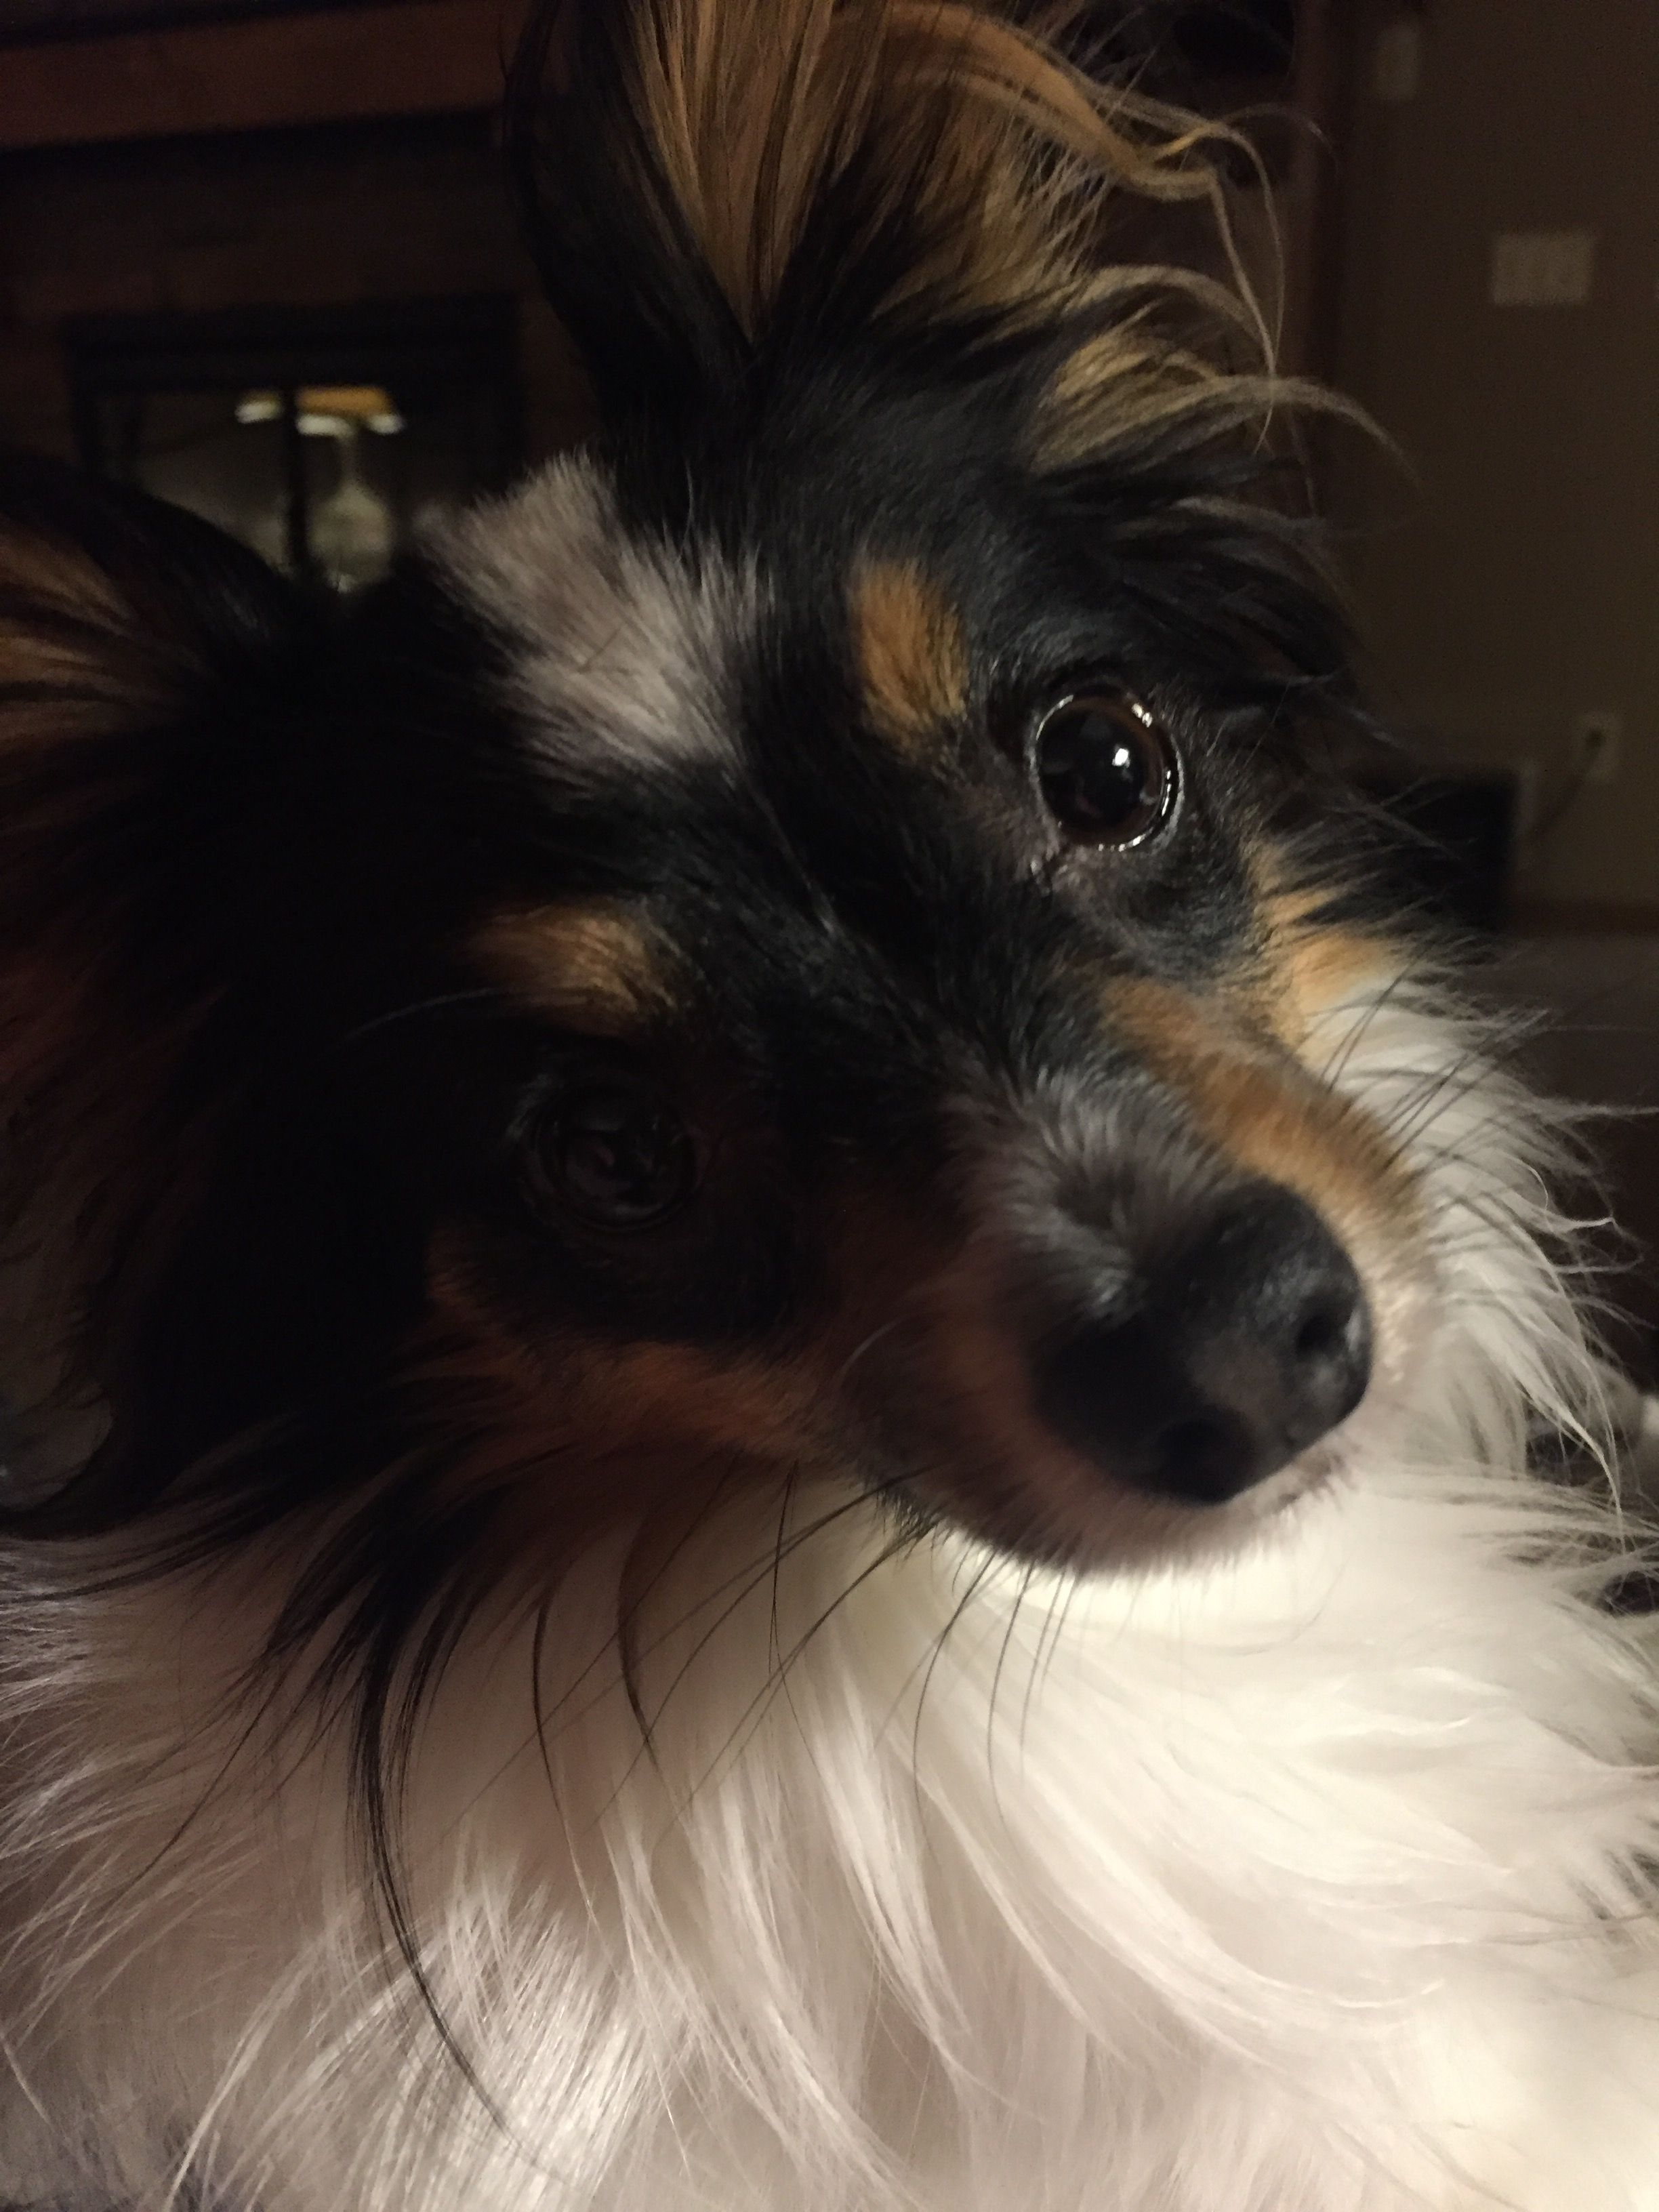 Pin by Shelly Zimmer on Pets I Love! Pets, Dogs, Animals